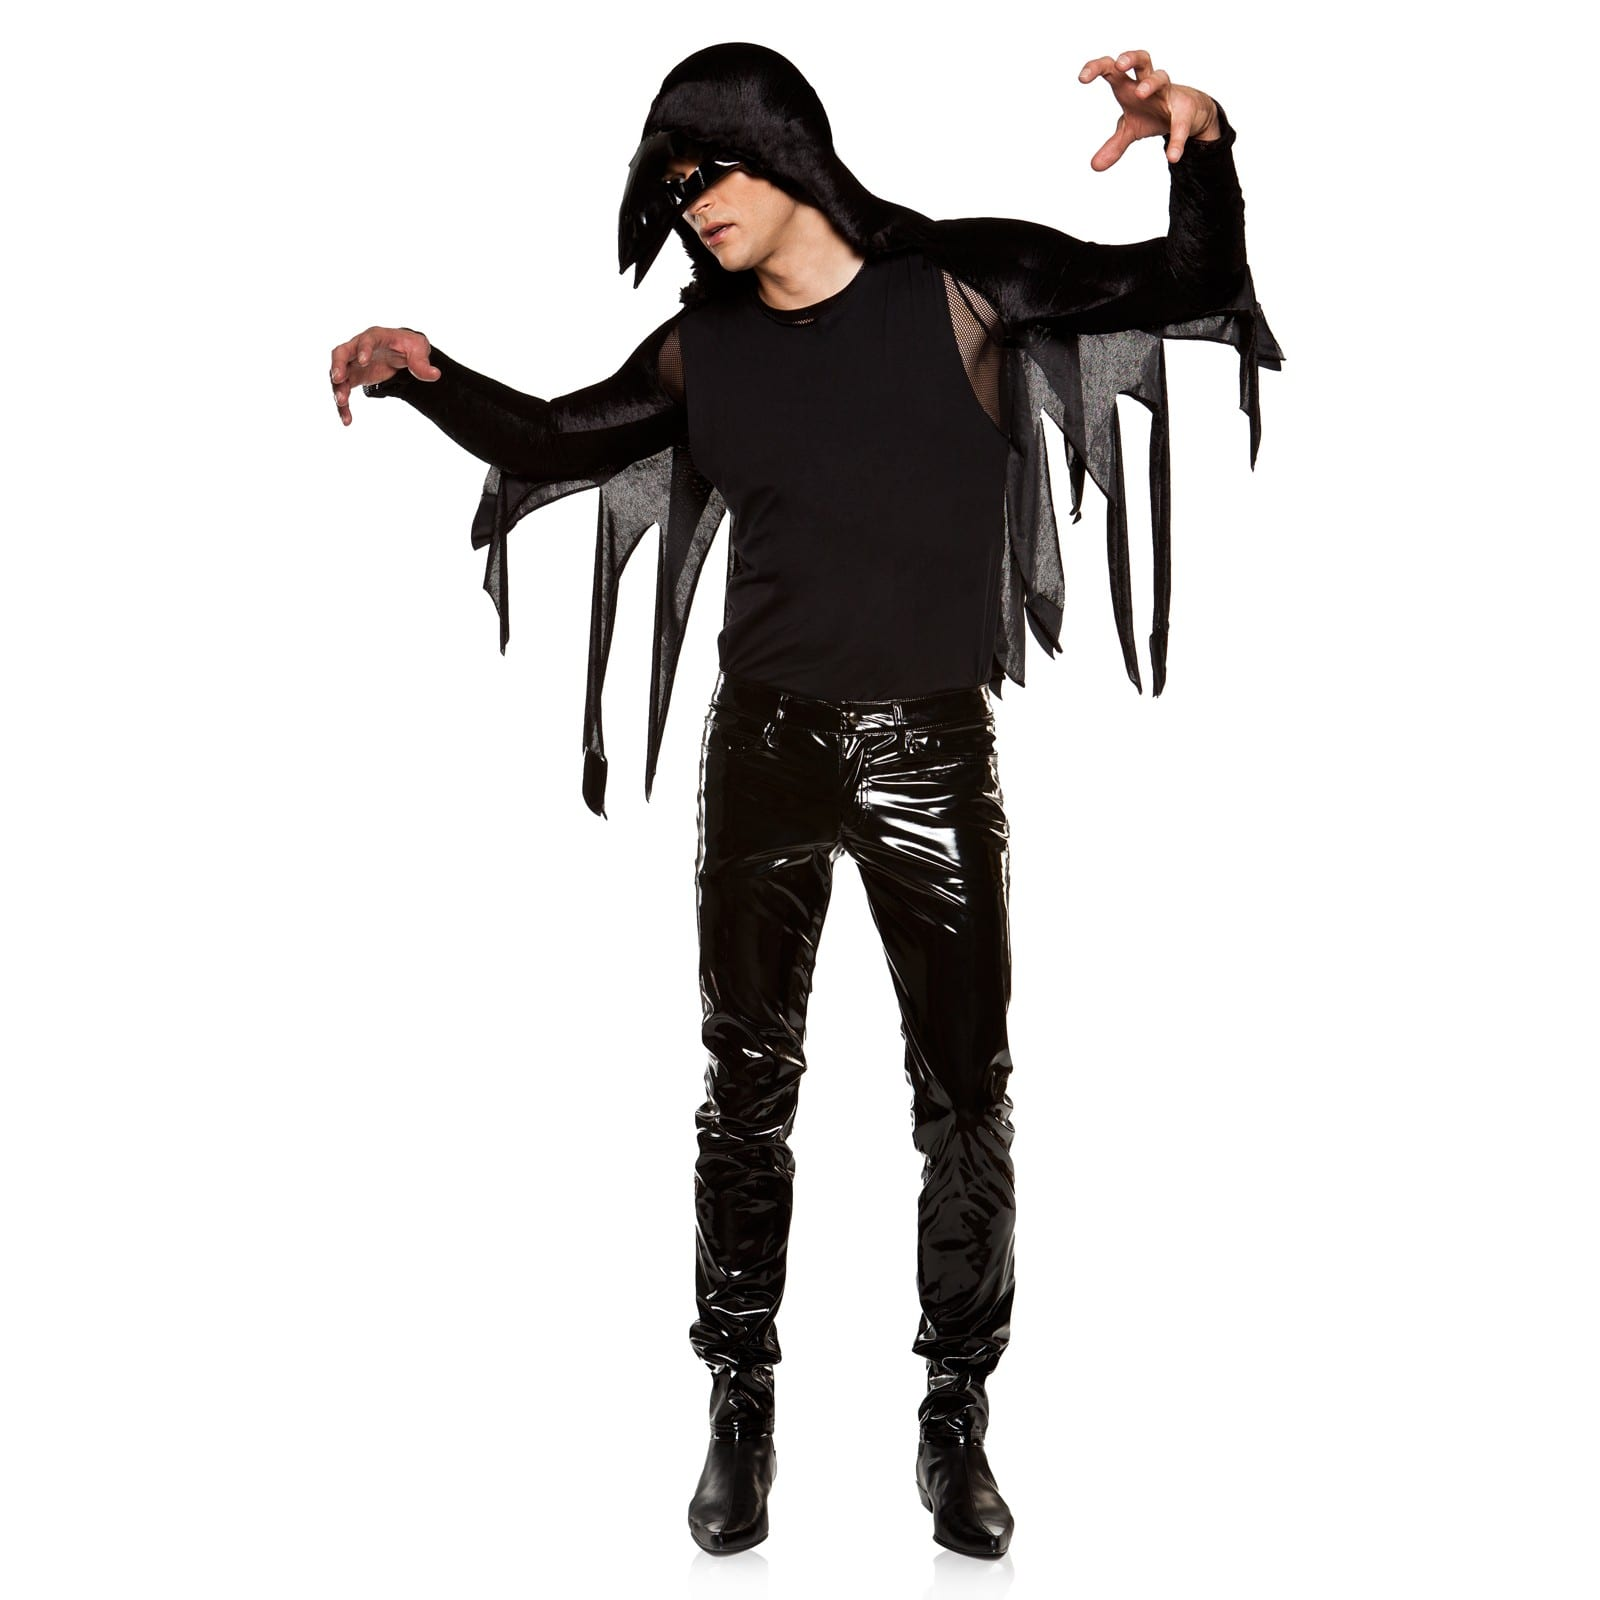 Creepy Winged Raven Halloween costume 2018  sc 1 st  List Top 10 & 10 Most Innovative u0026 Best Halloween Costume Ideas